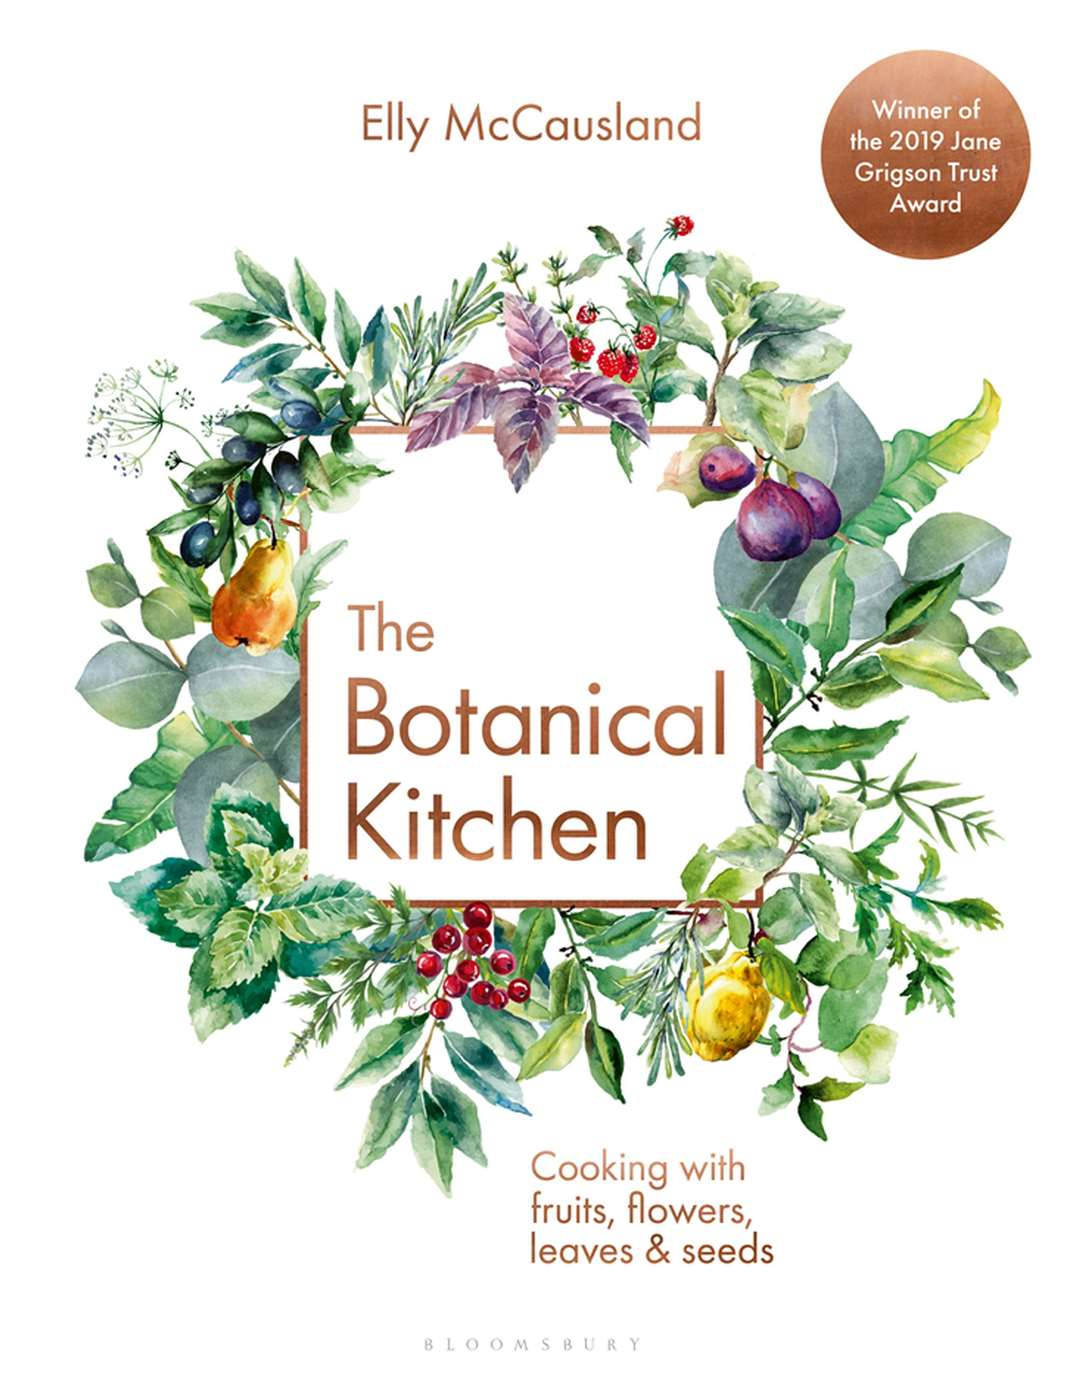 The Botanical Kitchen by Elly McCausland.Picture: Polly Webster/PA